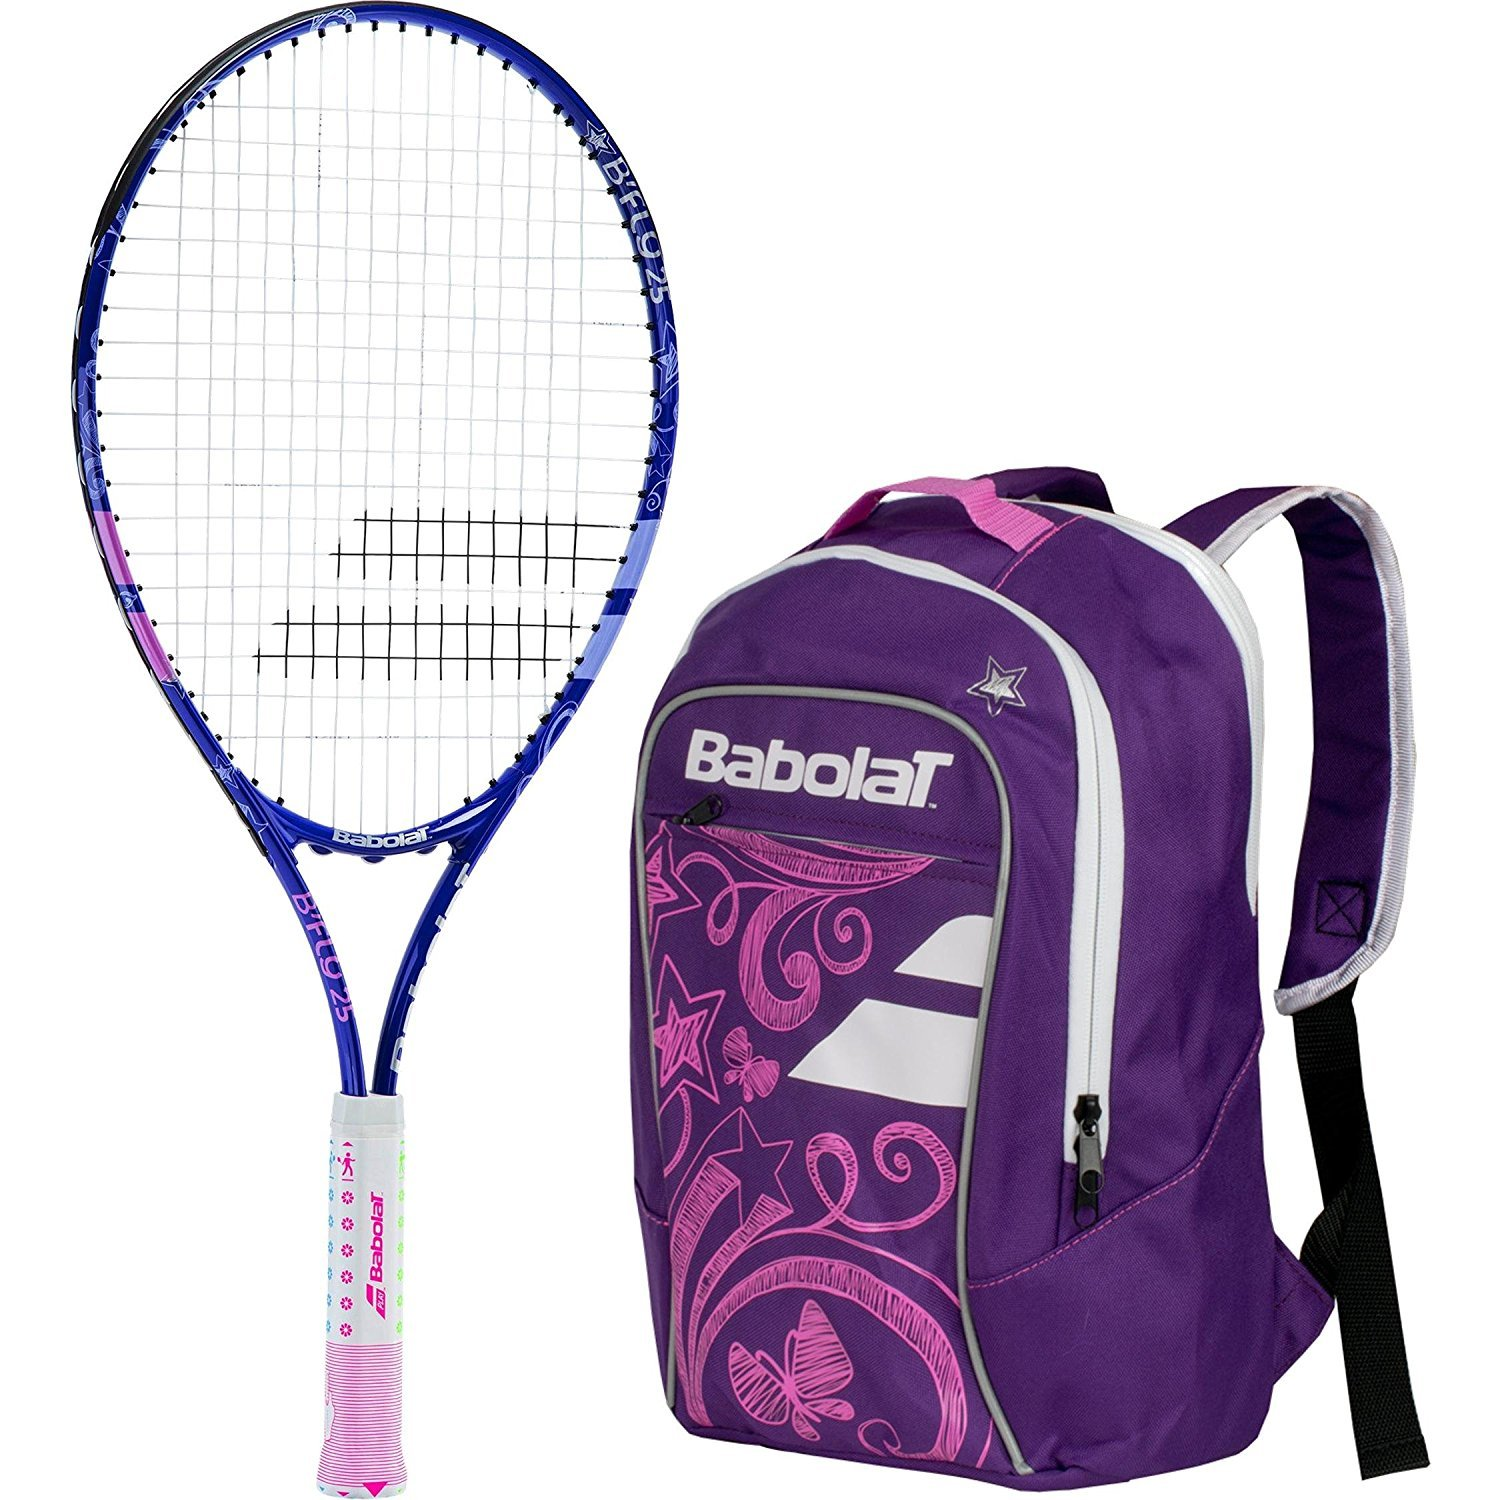 Babolat B'Fly 21'' Inch Child's Tennis Racquet/Racket Kit or Set Bundled with a Purple Junior Tennis Backpack (Best Back to School Gift for Boys and Girls) by Babolat (Image #1)